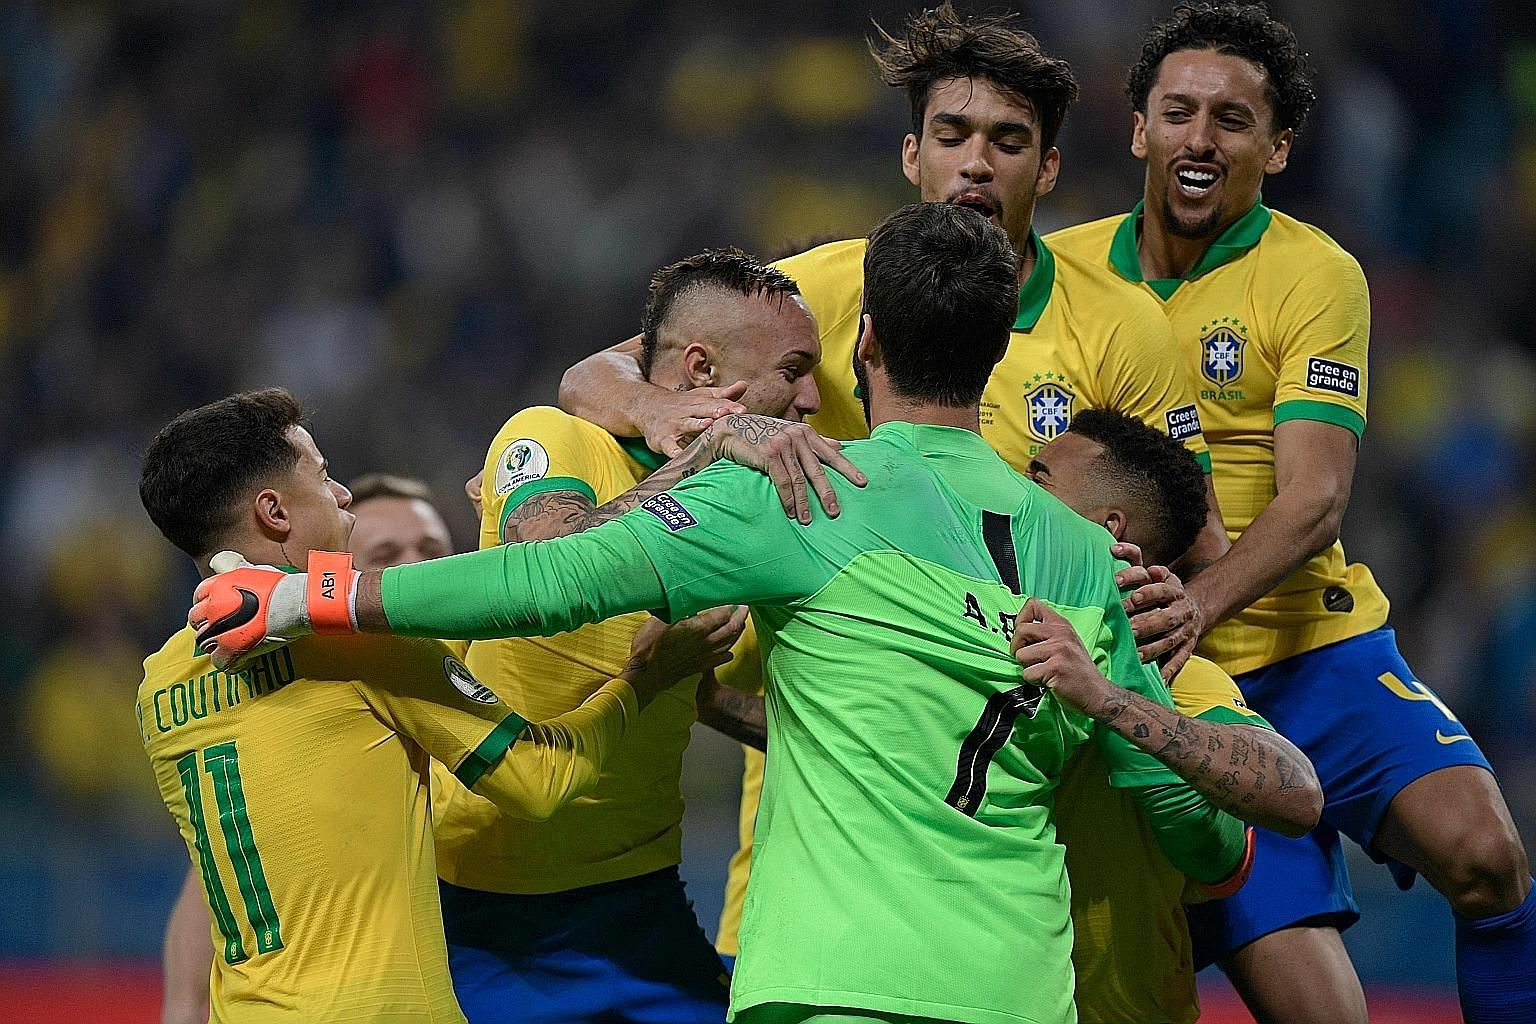 Brazil players including Philippe Coutinho and Alisson celebrating after beating Paraguay in a shoot-out in their Copa America quarter-final on Thursday. Brazil were eliminated by Paraguay in 2011 and 2015.